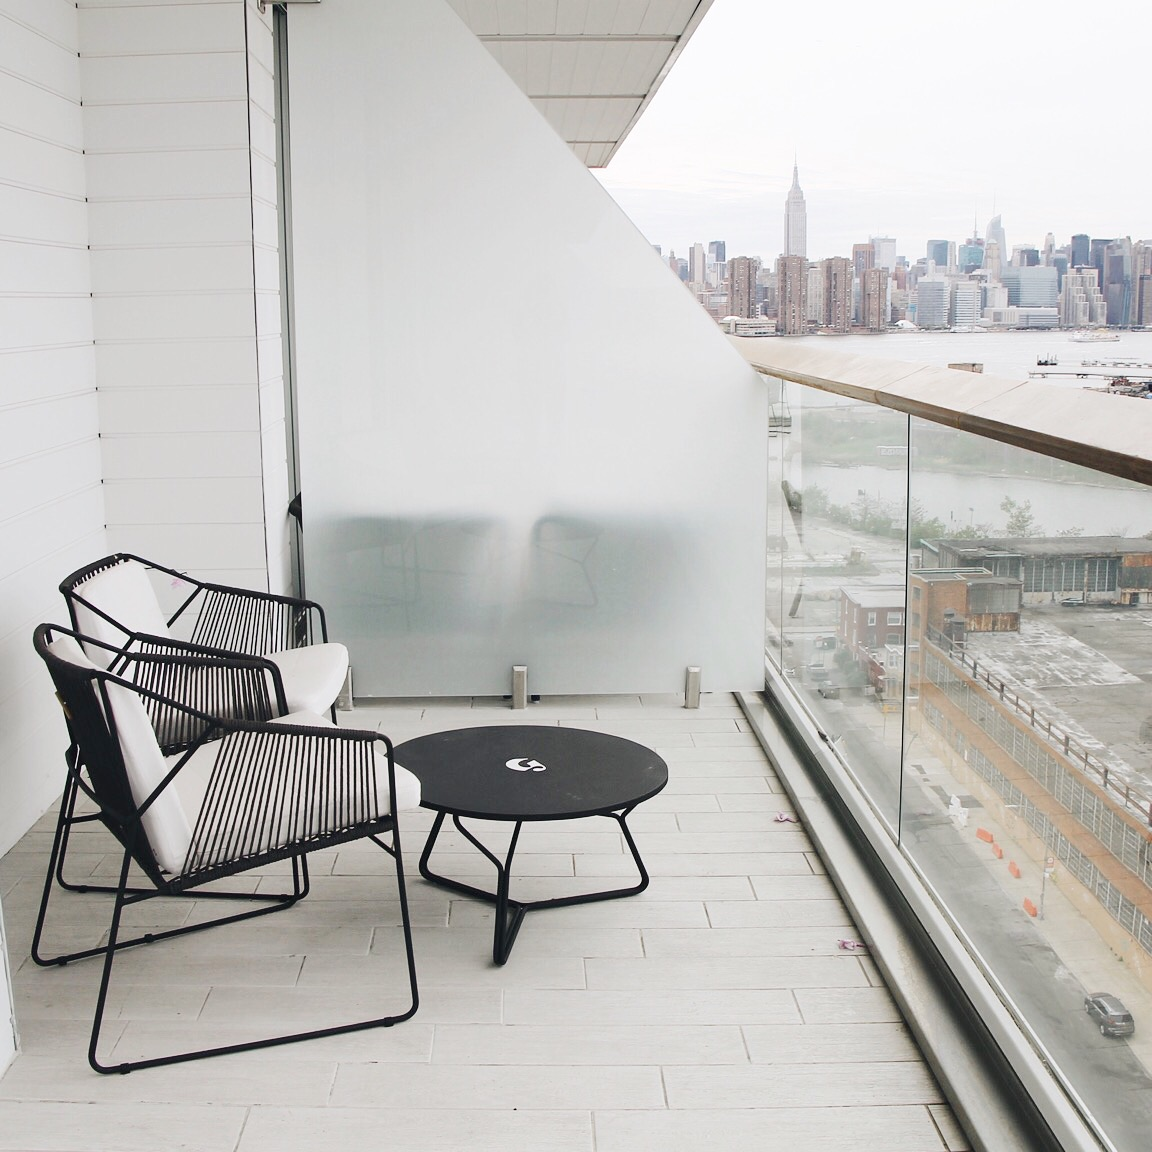 Glossier Rep Trip at The William Vale Hotel in Brooklyn, New York, Glossier Quarterly Rep Trip in NYC, Glossier Rep, Glossier Brand Rep, Glossier, William Vale Hotel, Glossier Rep Trip